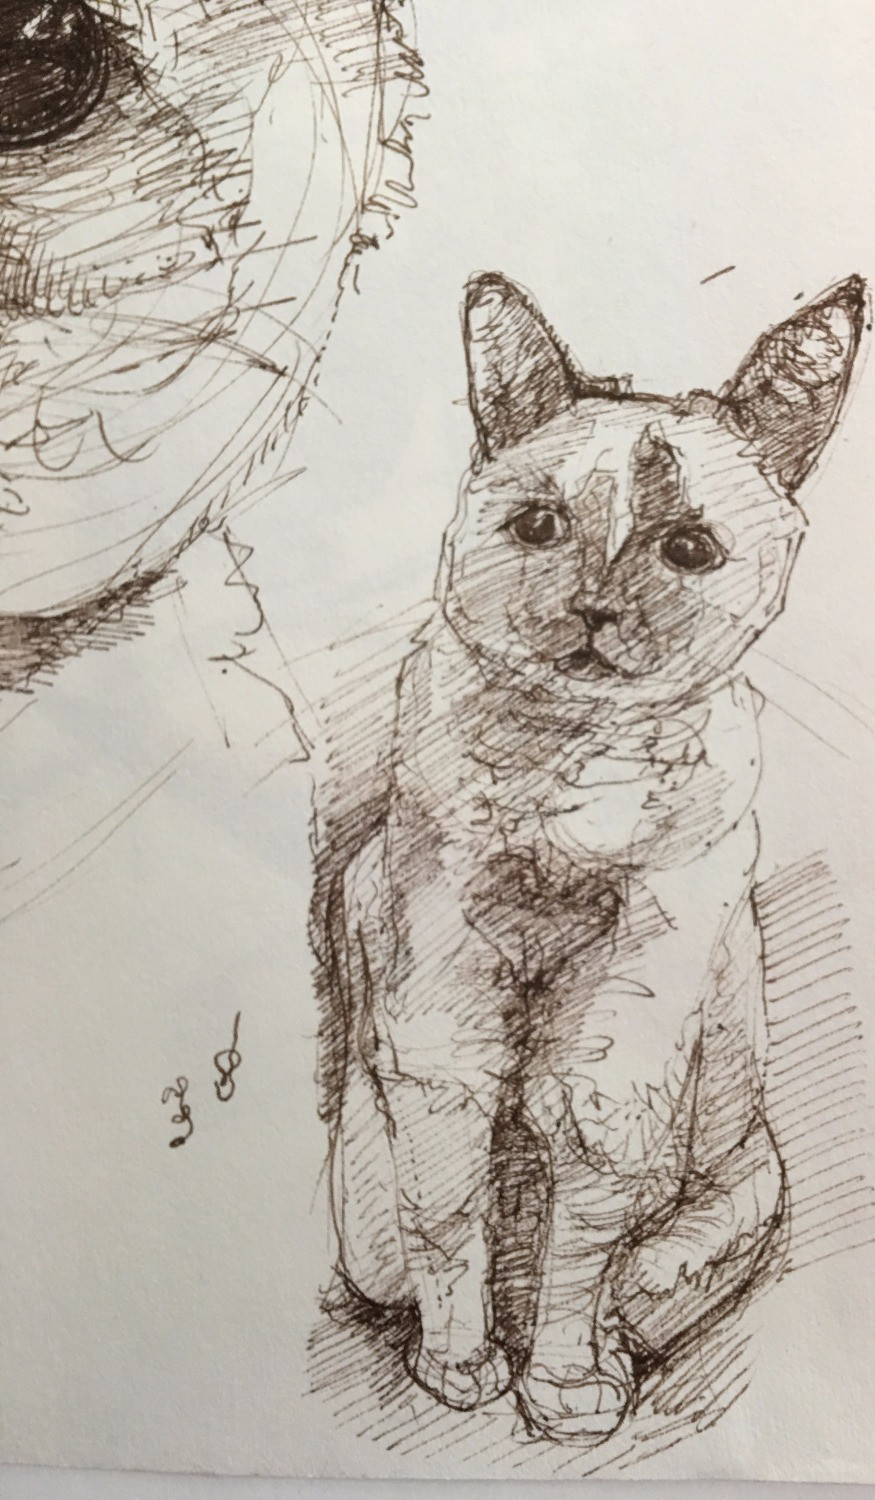 pen sketch of a cat sitting looking at the viewer